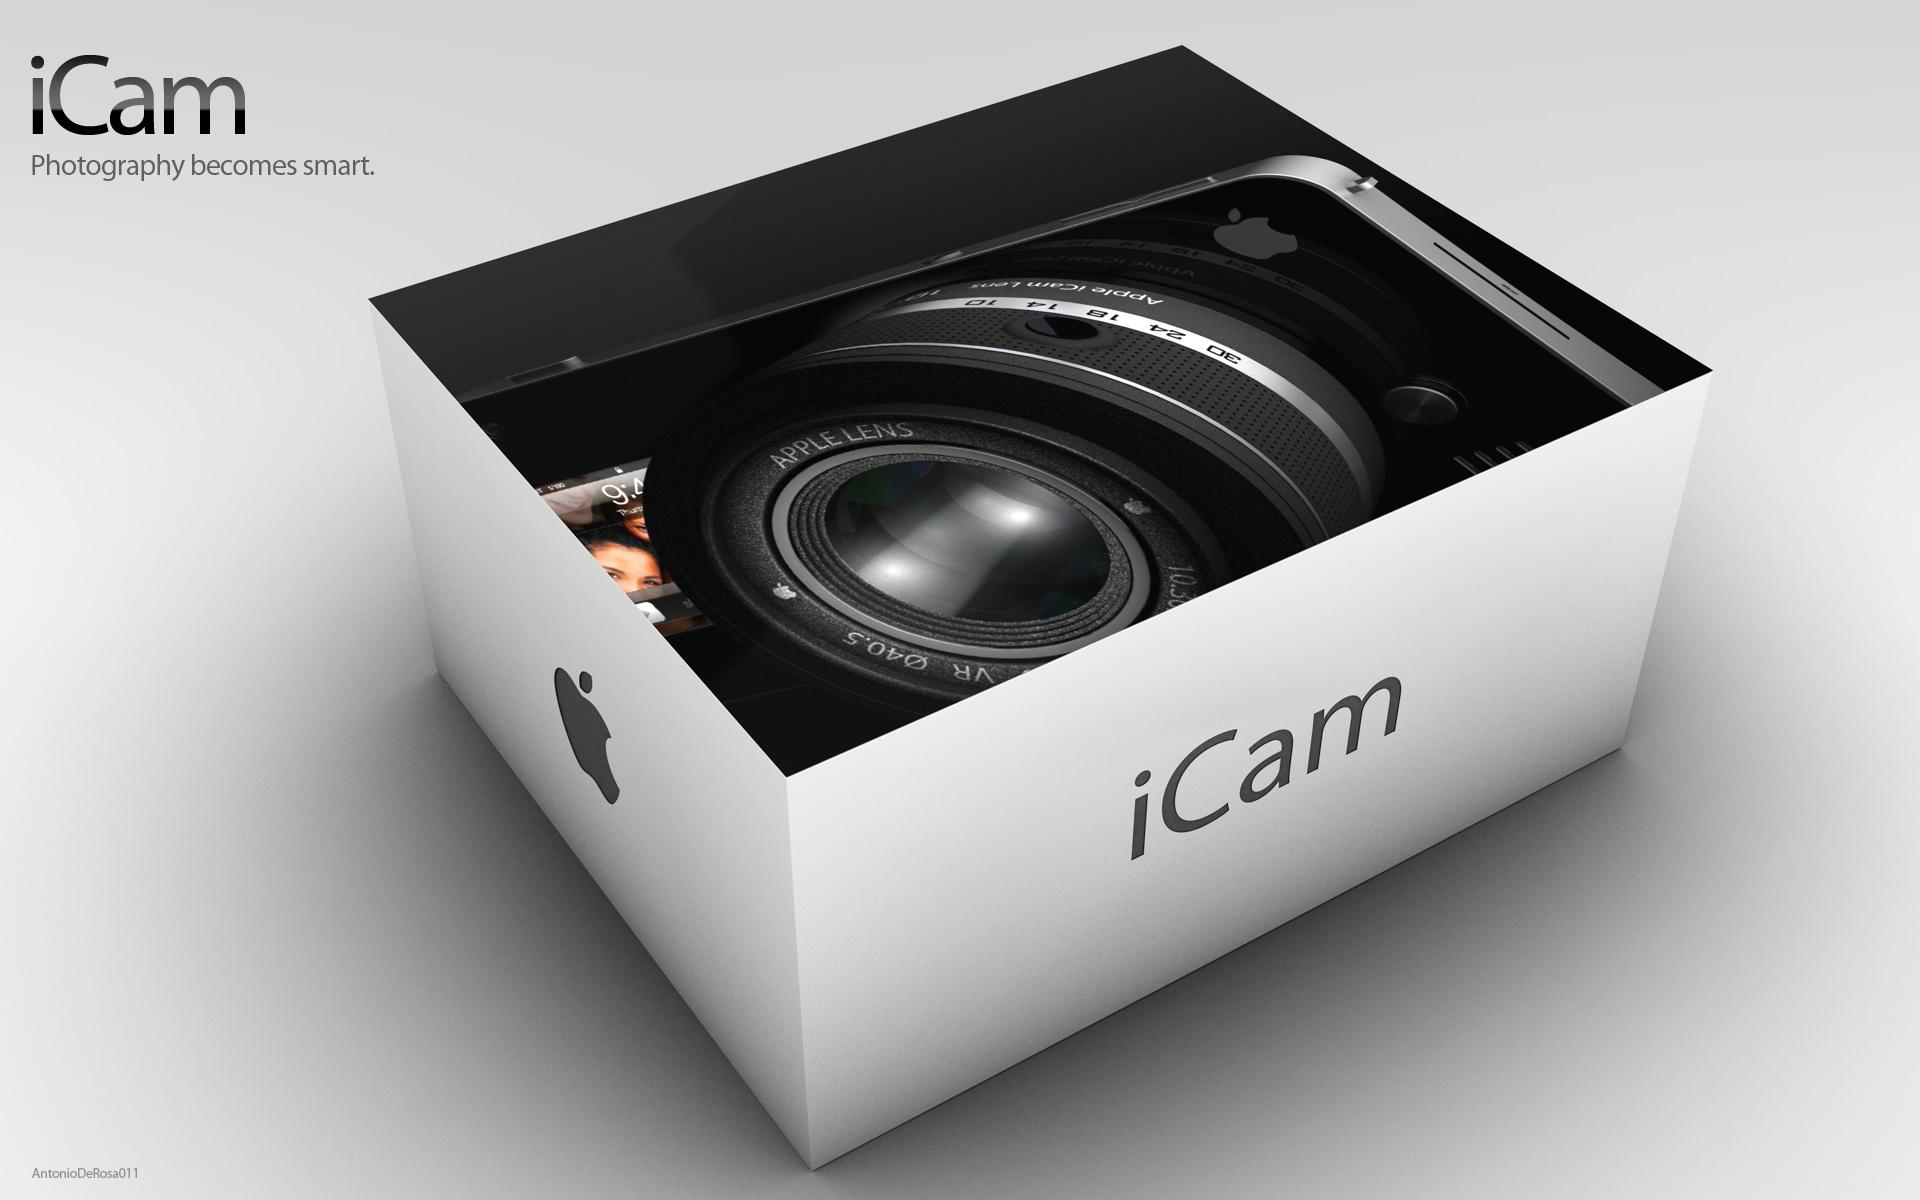 iCam_Packaging_01.jpg (1920×1200)